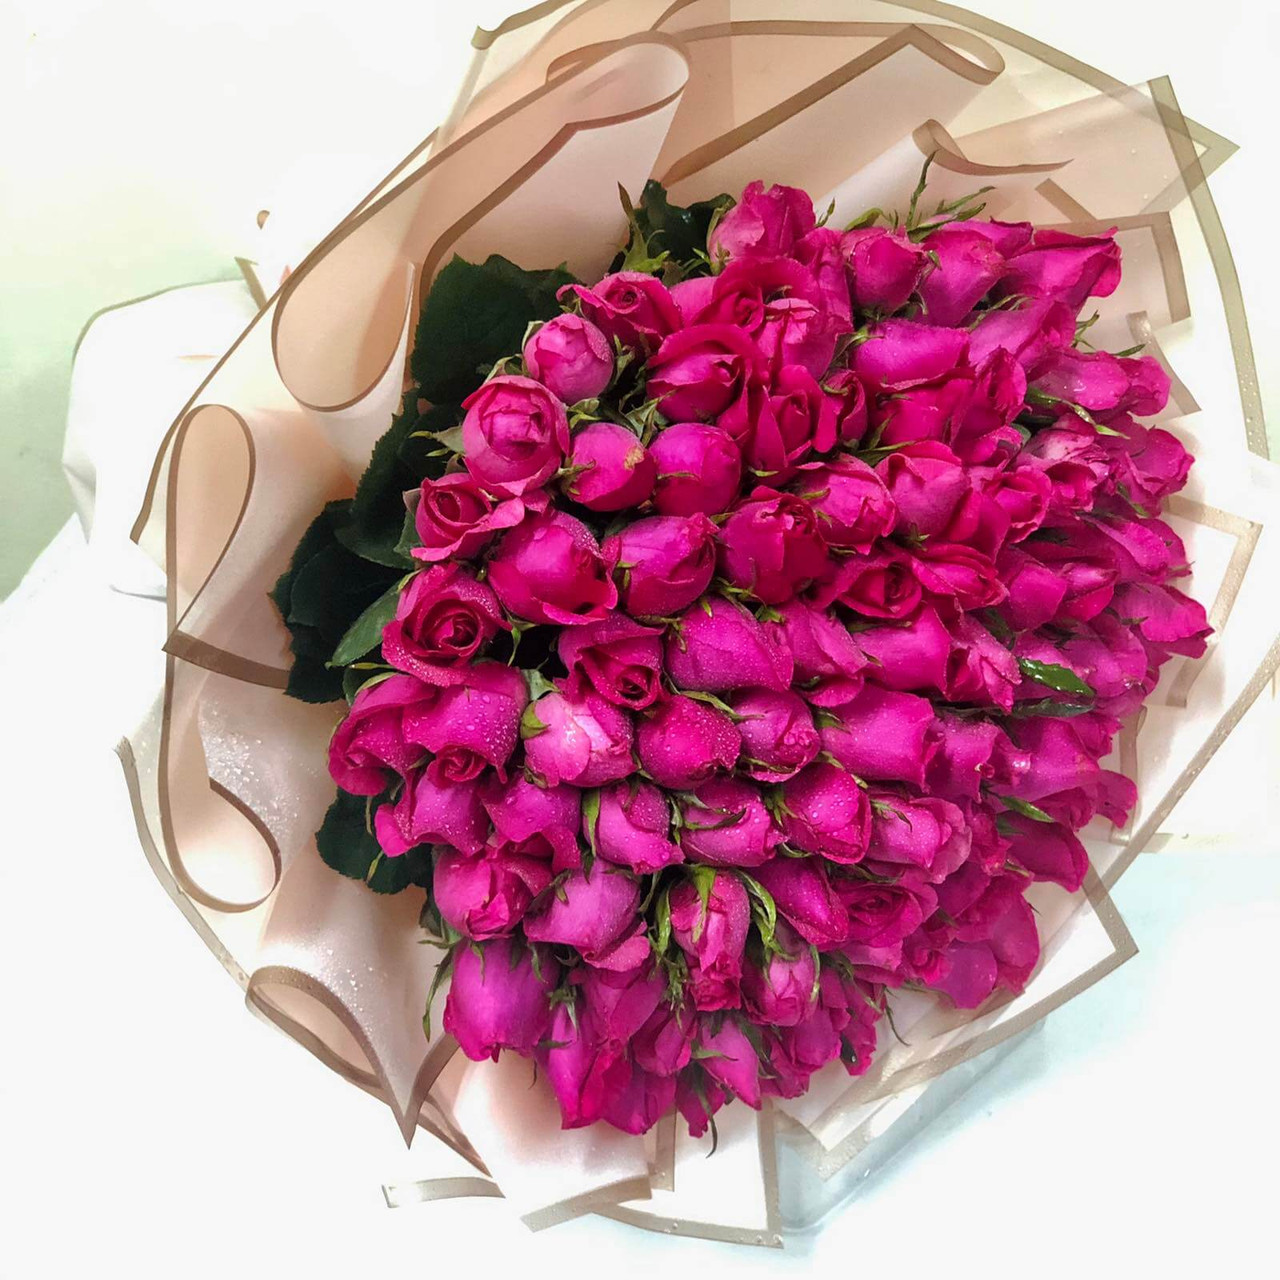 100 Roses Giant Bouquet